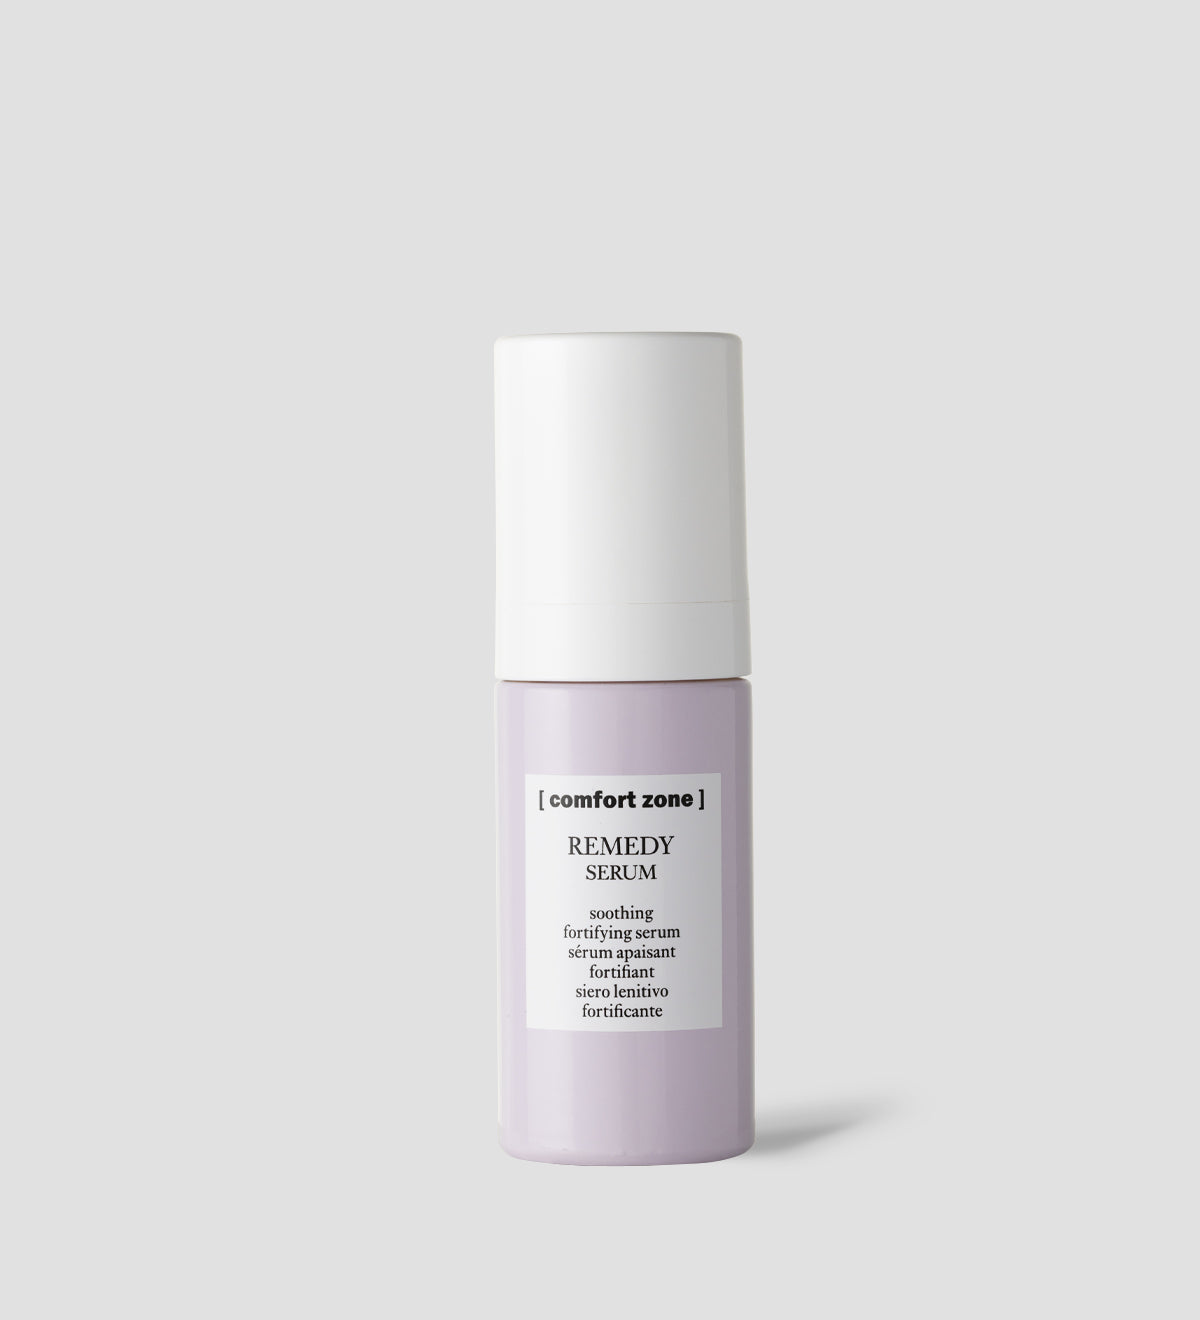 Comfort Zone: REMEDY SERUM Soothing fortifying serum-1